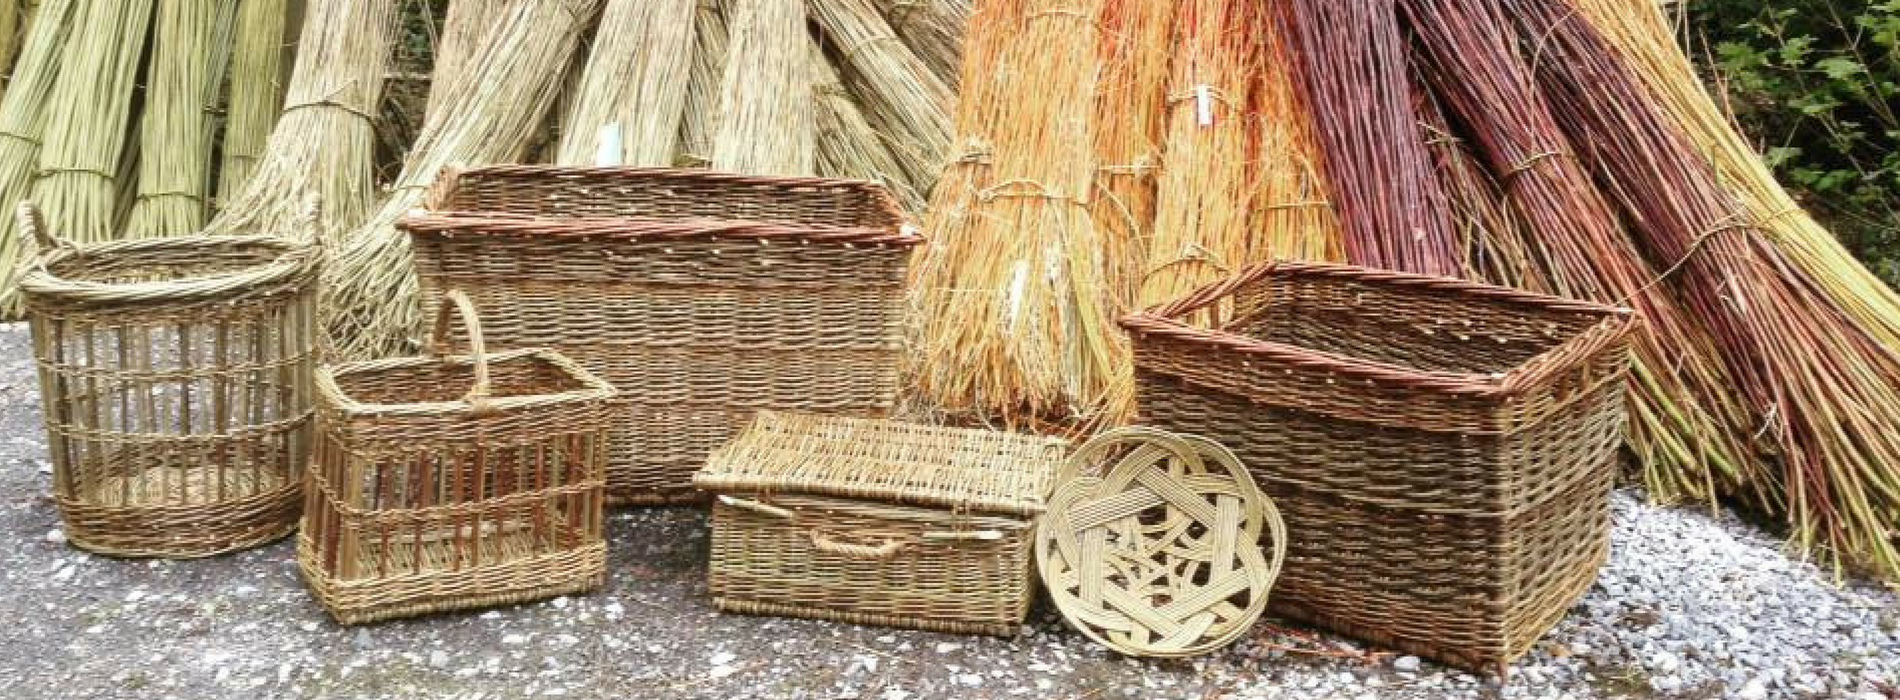 Wyldwood Willow Baskets Wicker